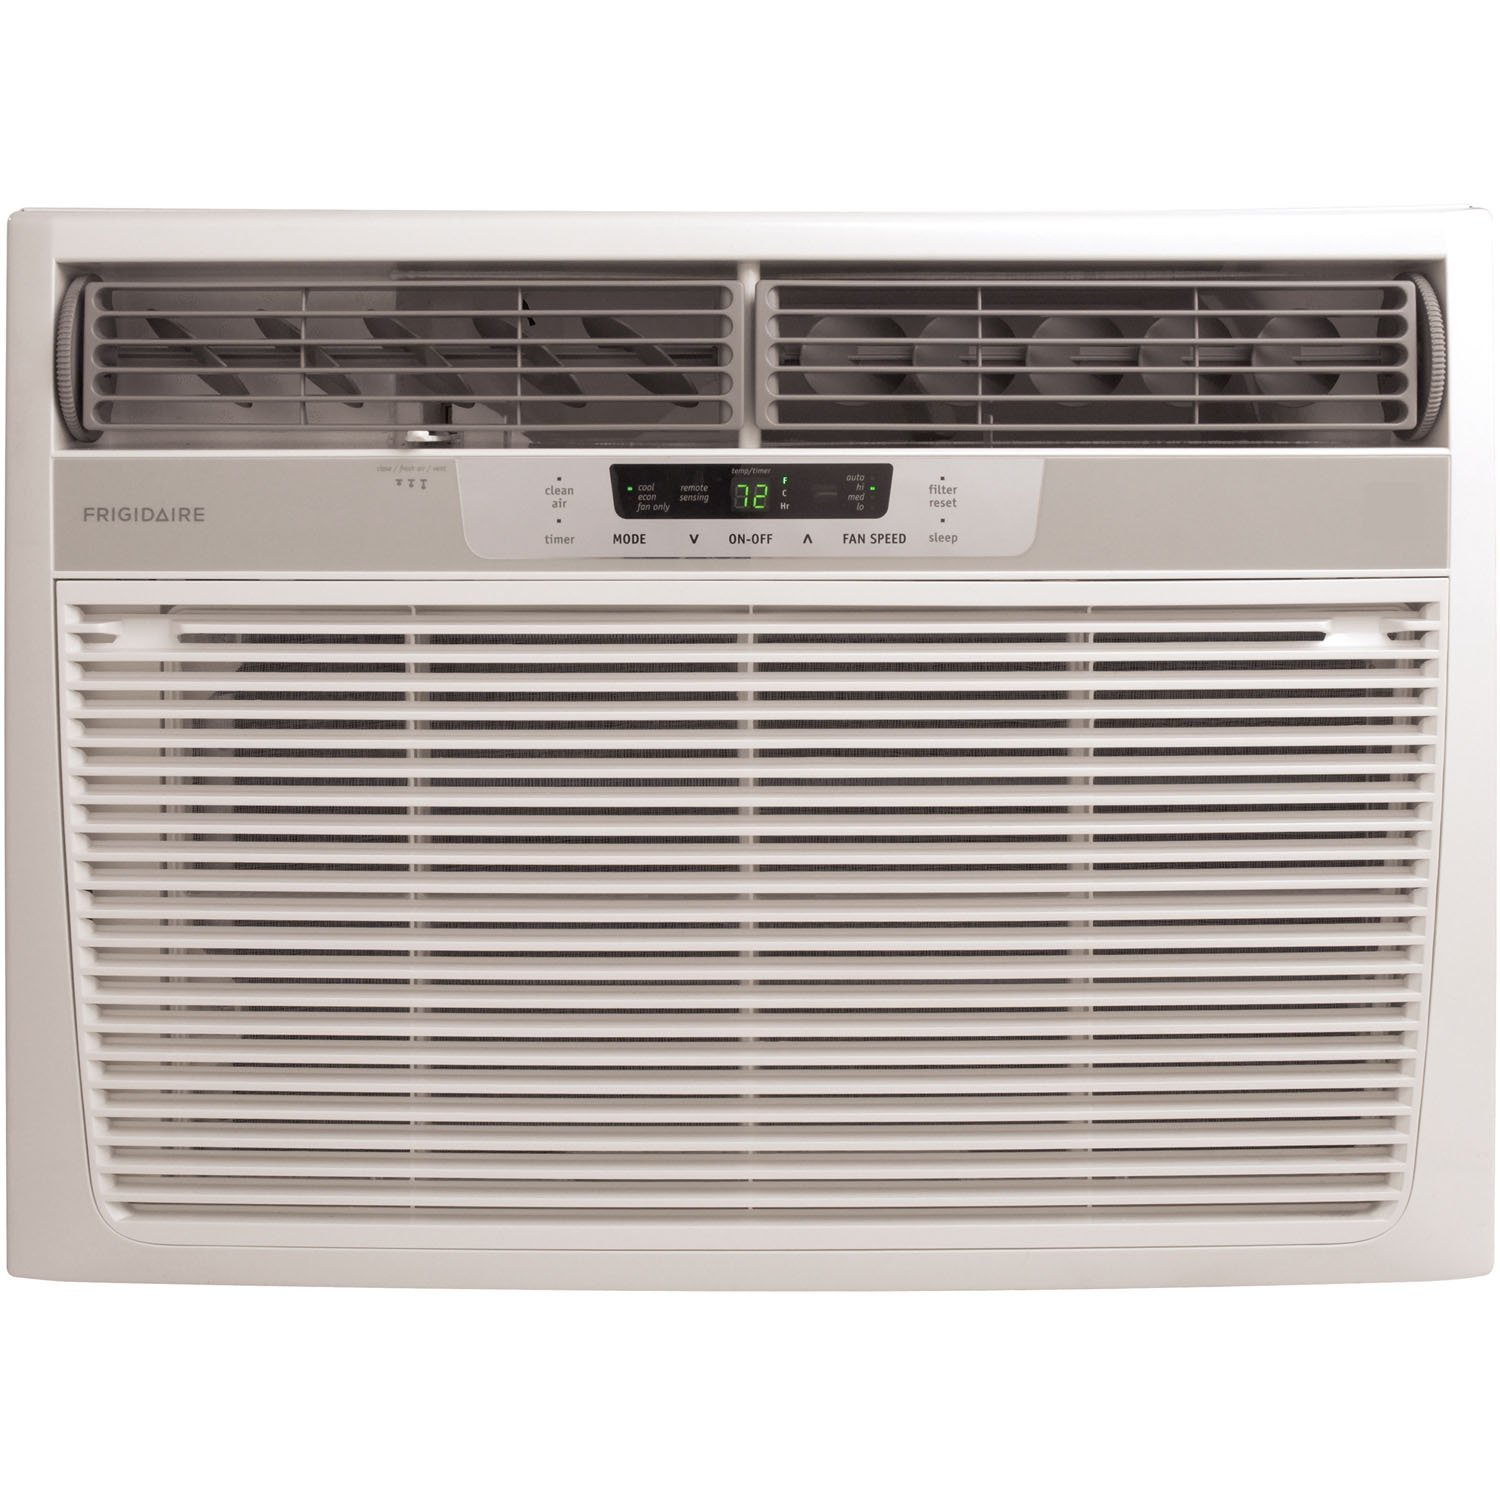 #4C683C Frigidaire FRA156MT1 15 100 BTU Window Mounted Room Air  Best 7393 Window Mounted Ac photos with 1500x1500 px on helpvideos.info - Air Conditioners, Air Coolers and more